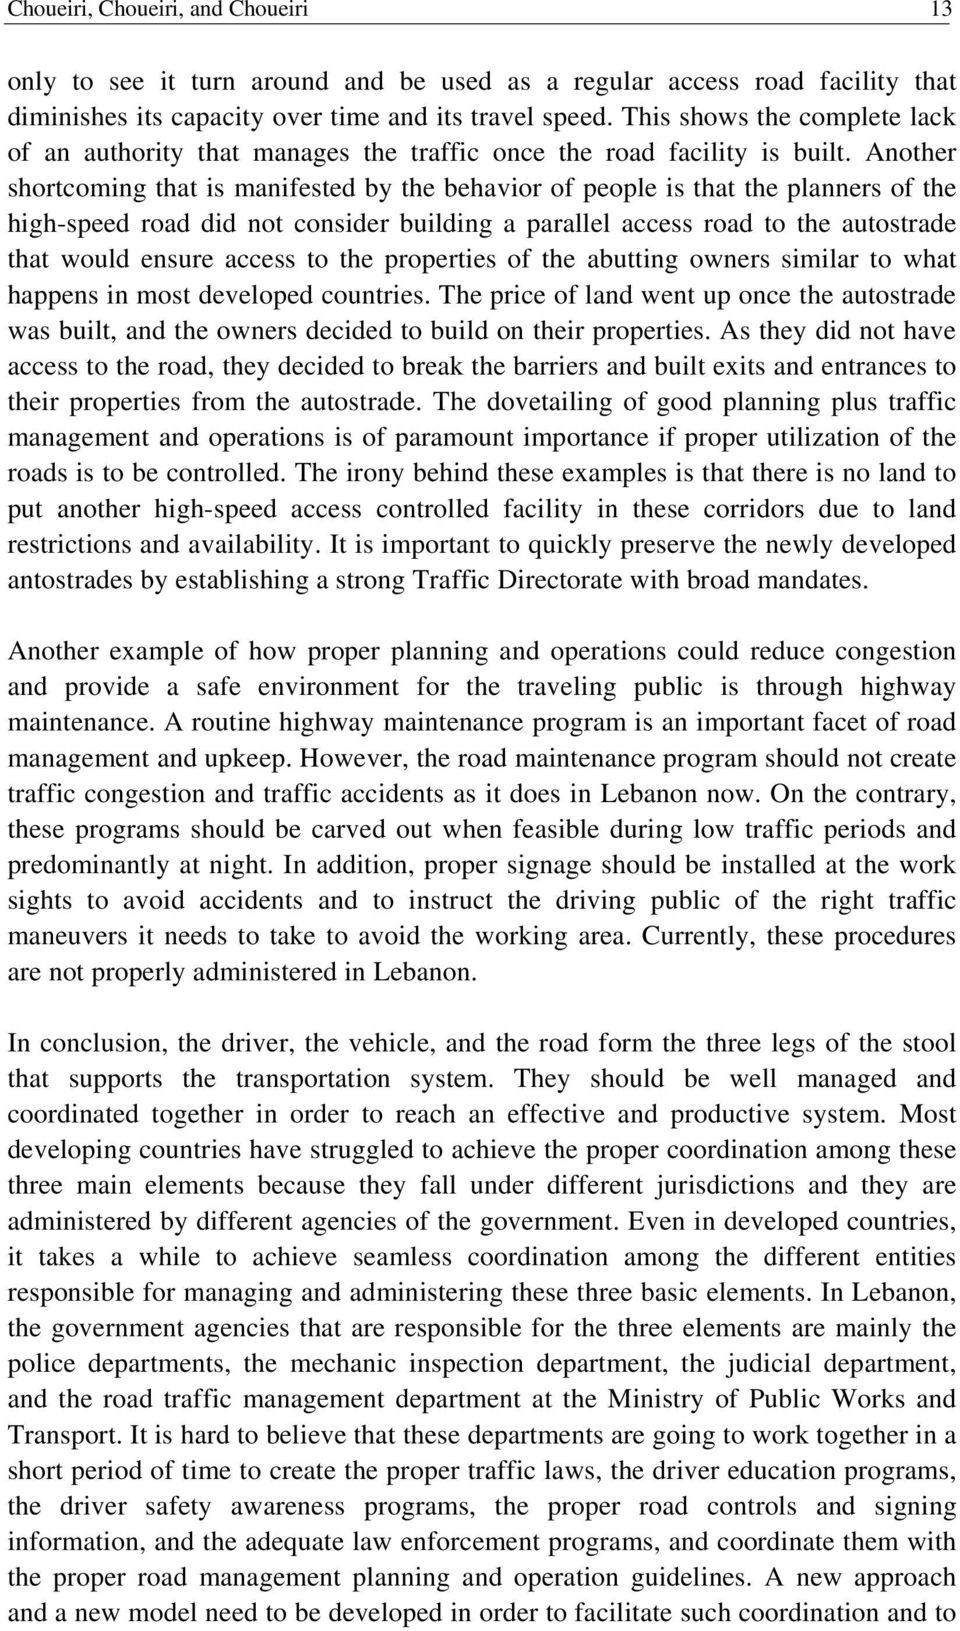 Another shortcoming that is manifested by the behavior of people is that the planners of the high-speed road did not consider building a parallel access road to the autostrade that would ensure